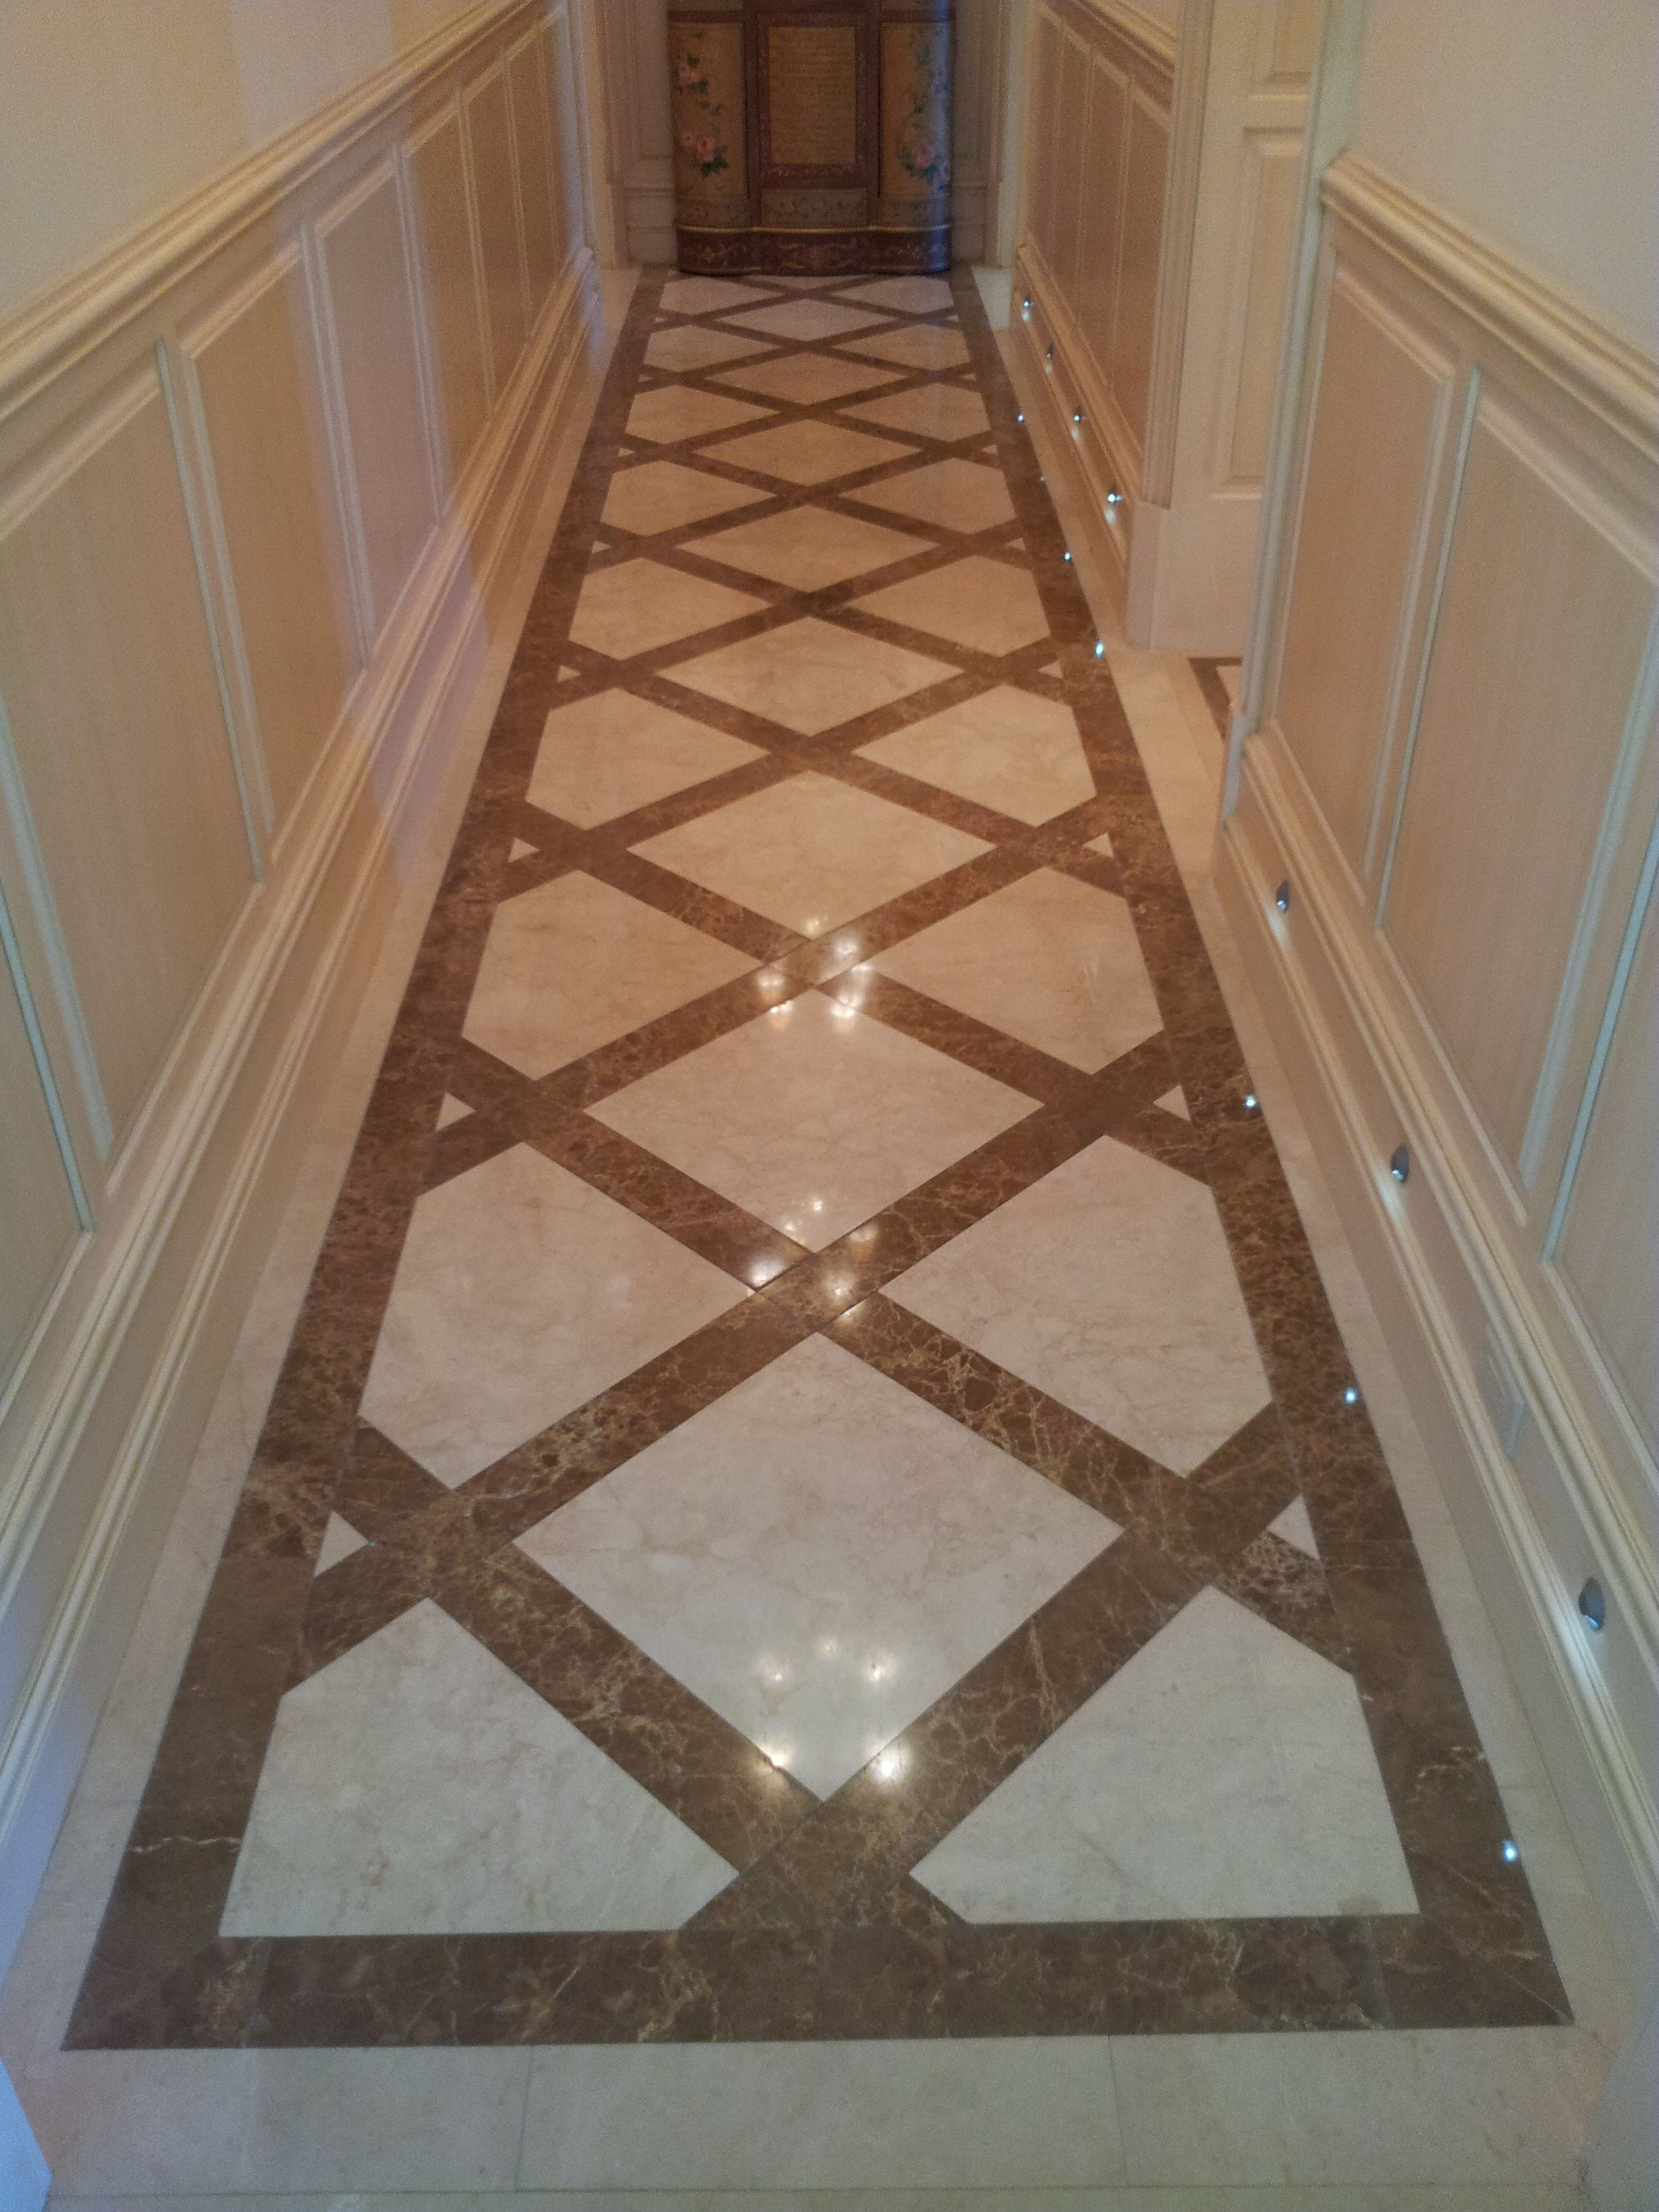 Crema Marfil And Emperador Light Marble Floors Design By Blair Burns Please  Call For More Info